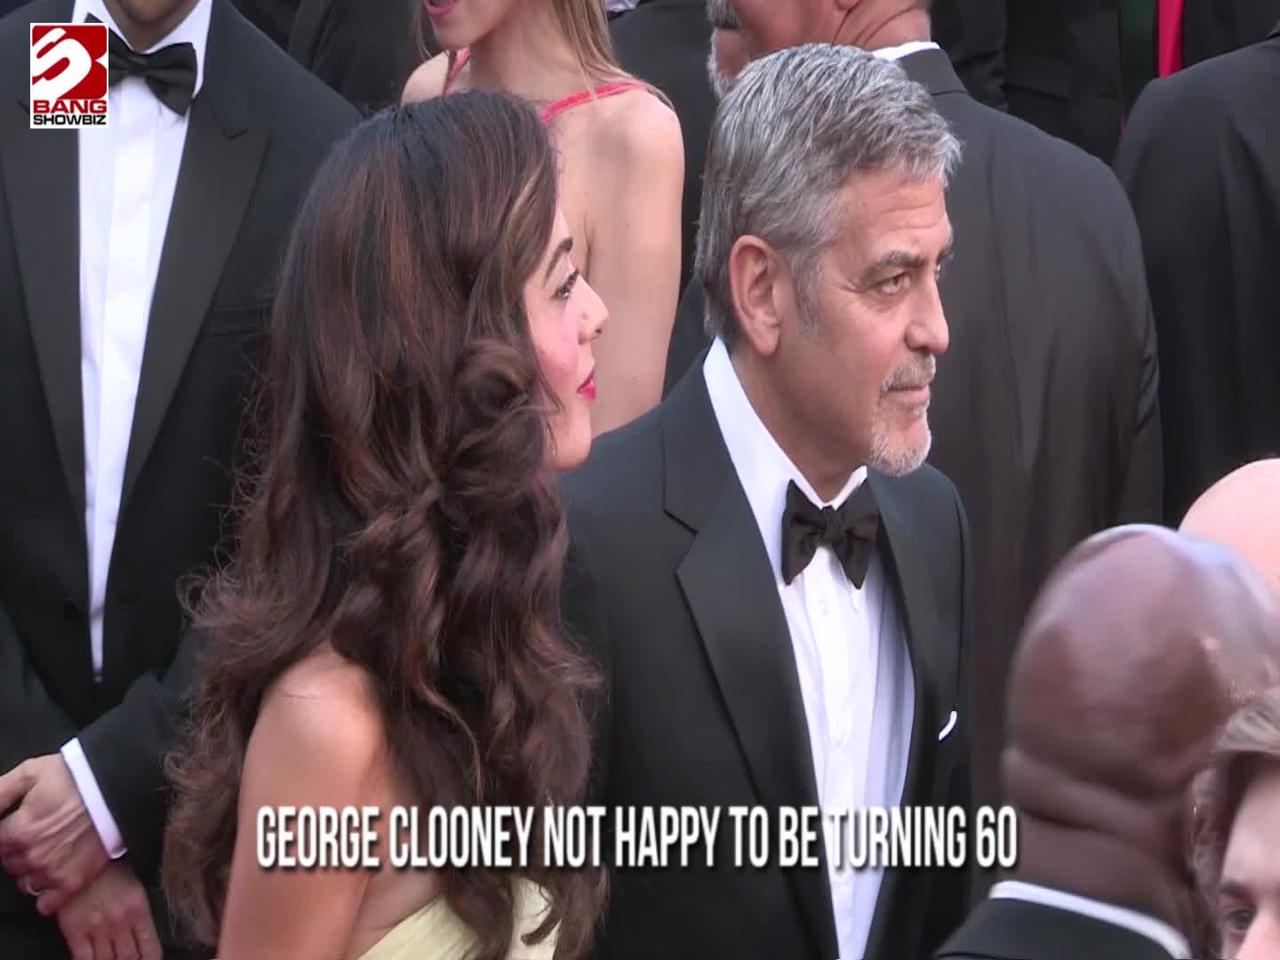 George Clooney is a Brad Pitt super-fan in hilarious fundraising skit